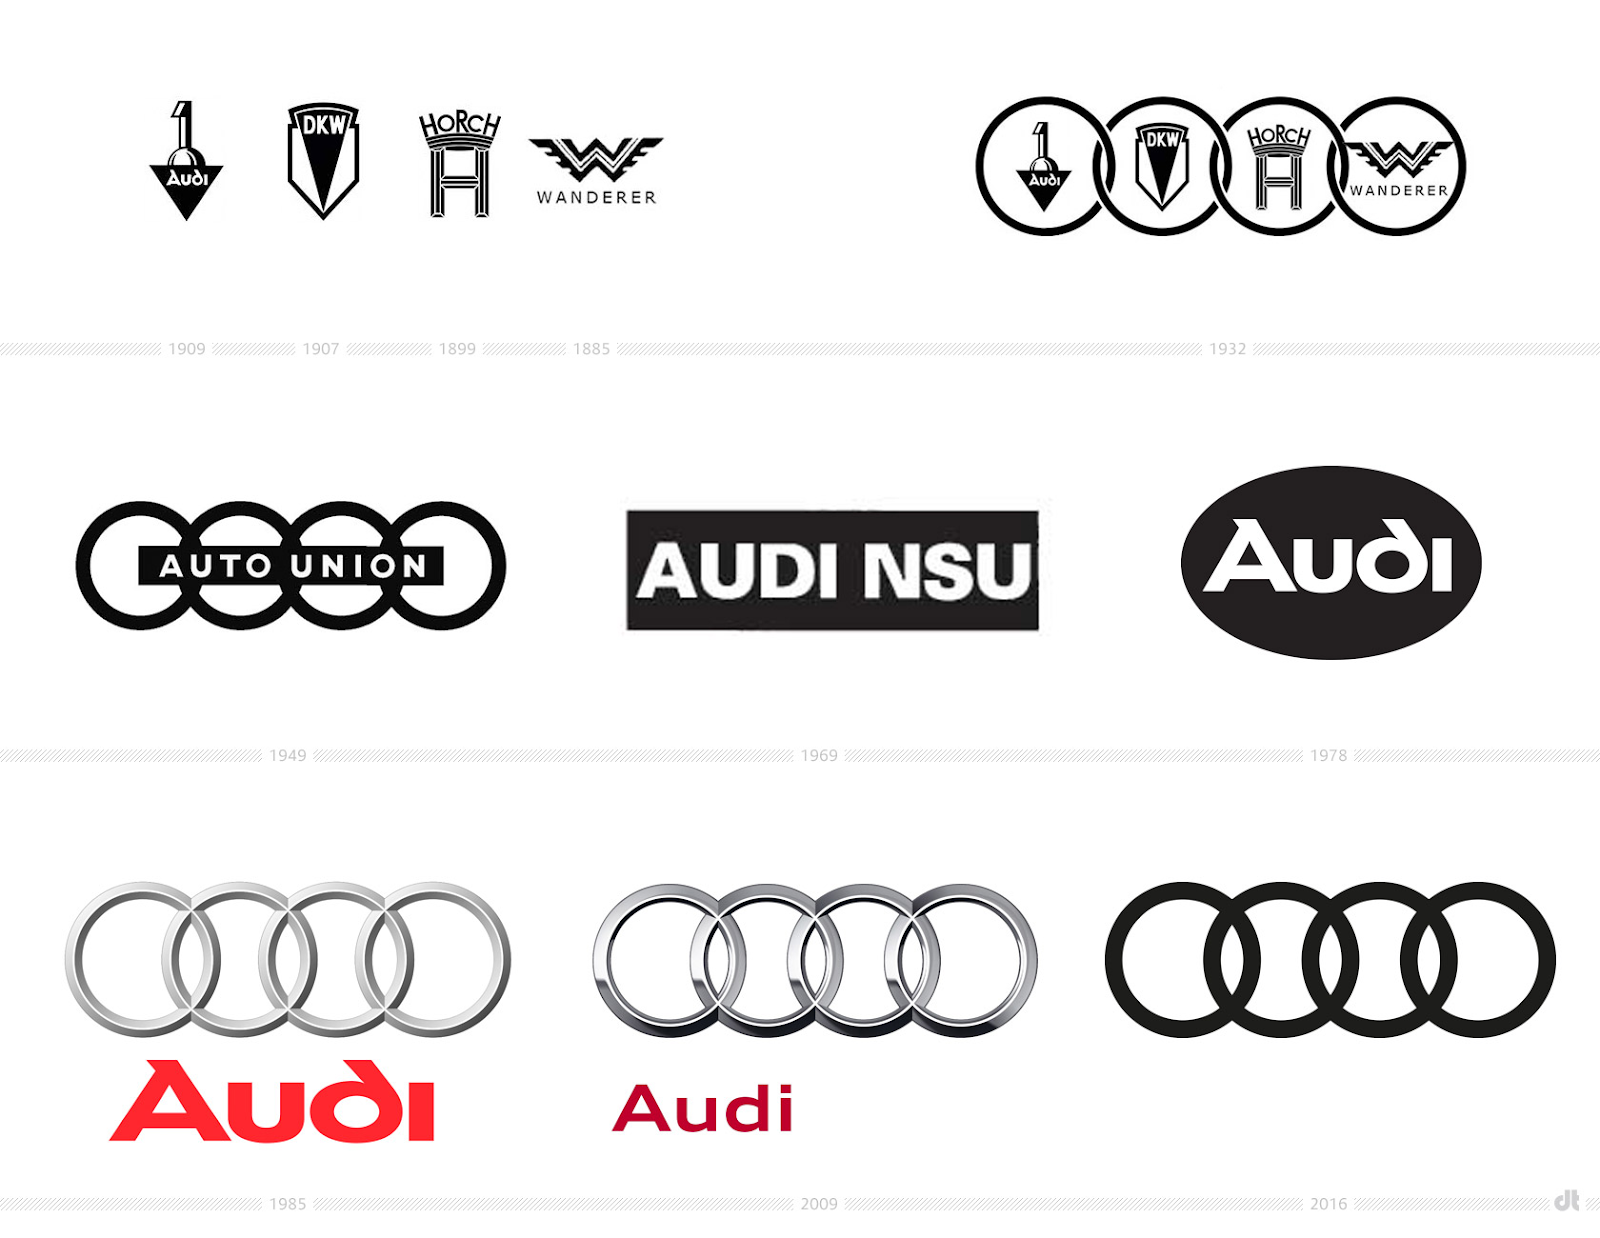 Audi logo history and where the name Audi came from